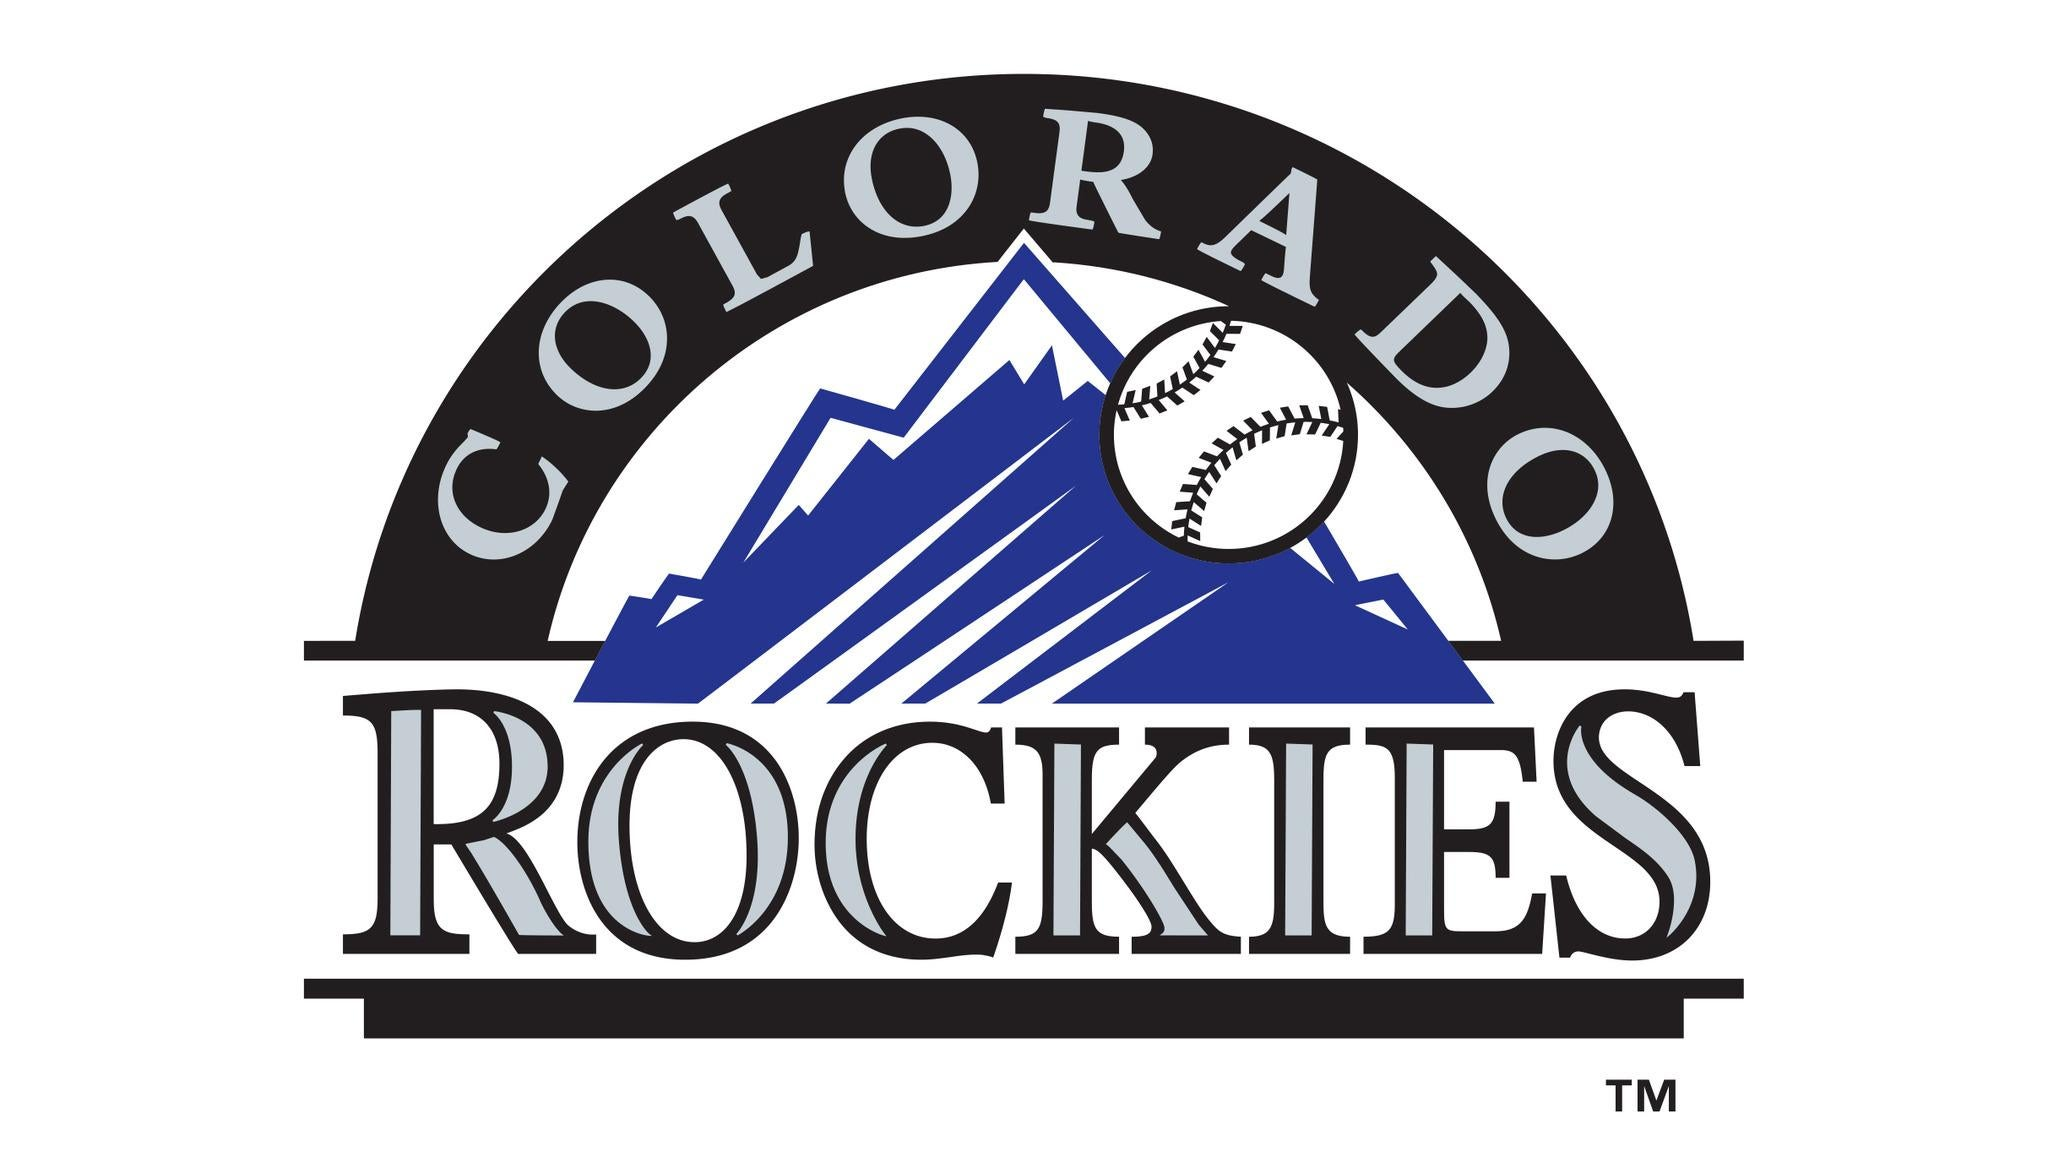 Colorado Rockies vs. Washington Nationals at Coors Field